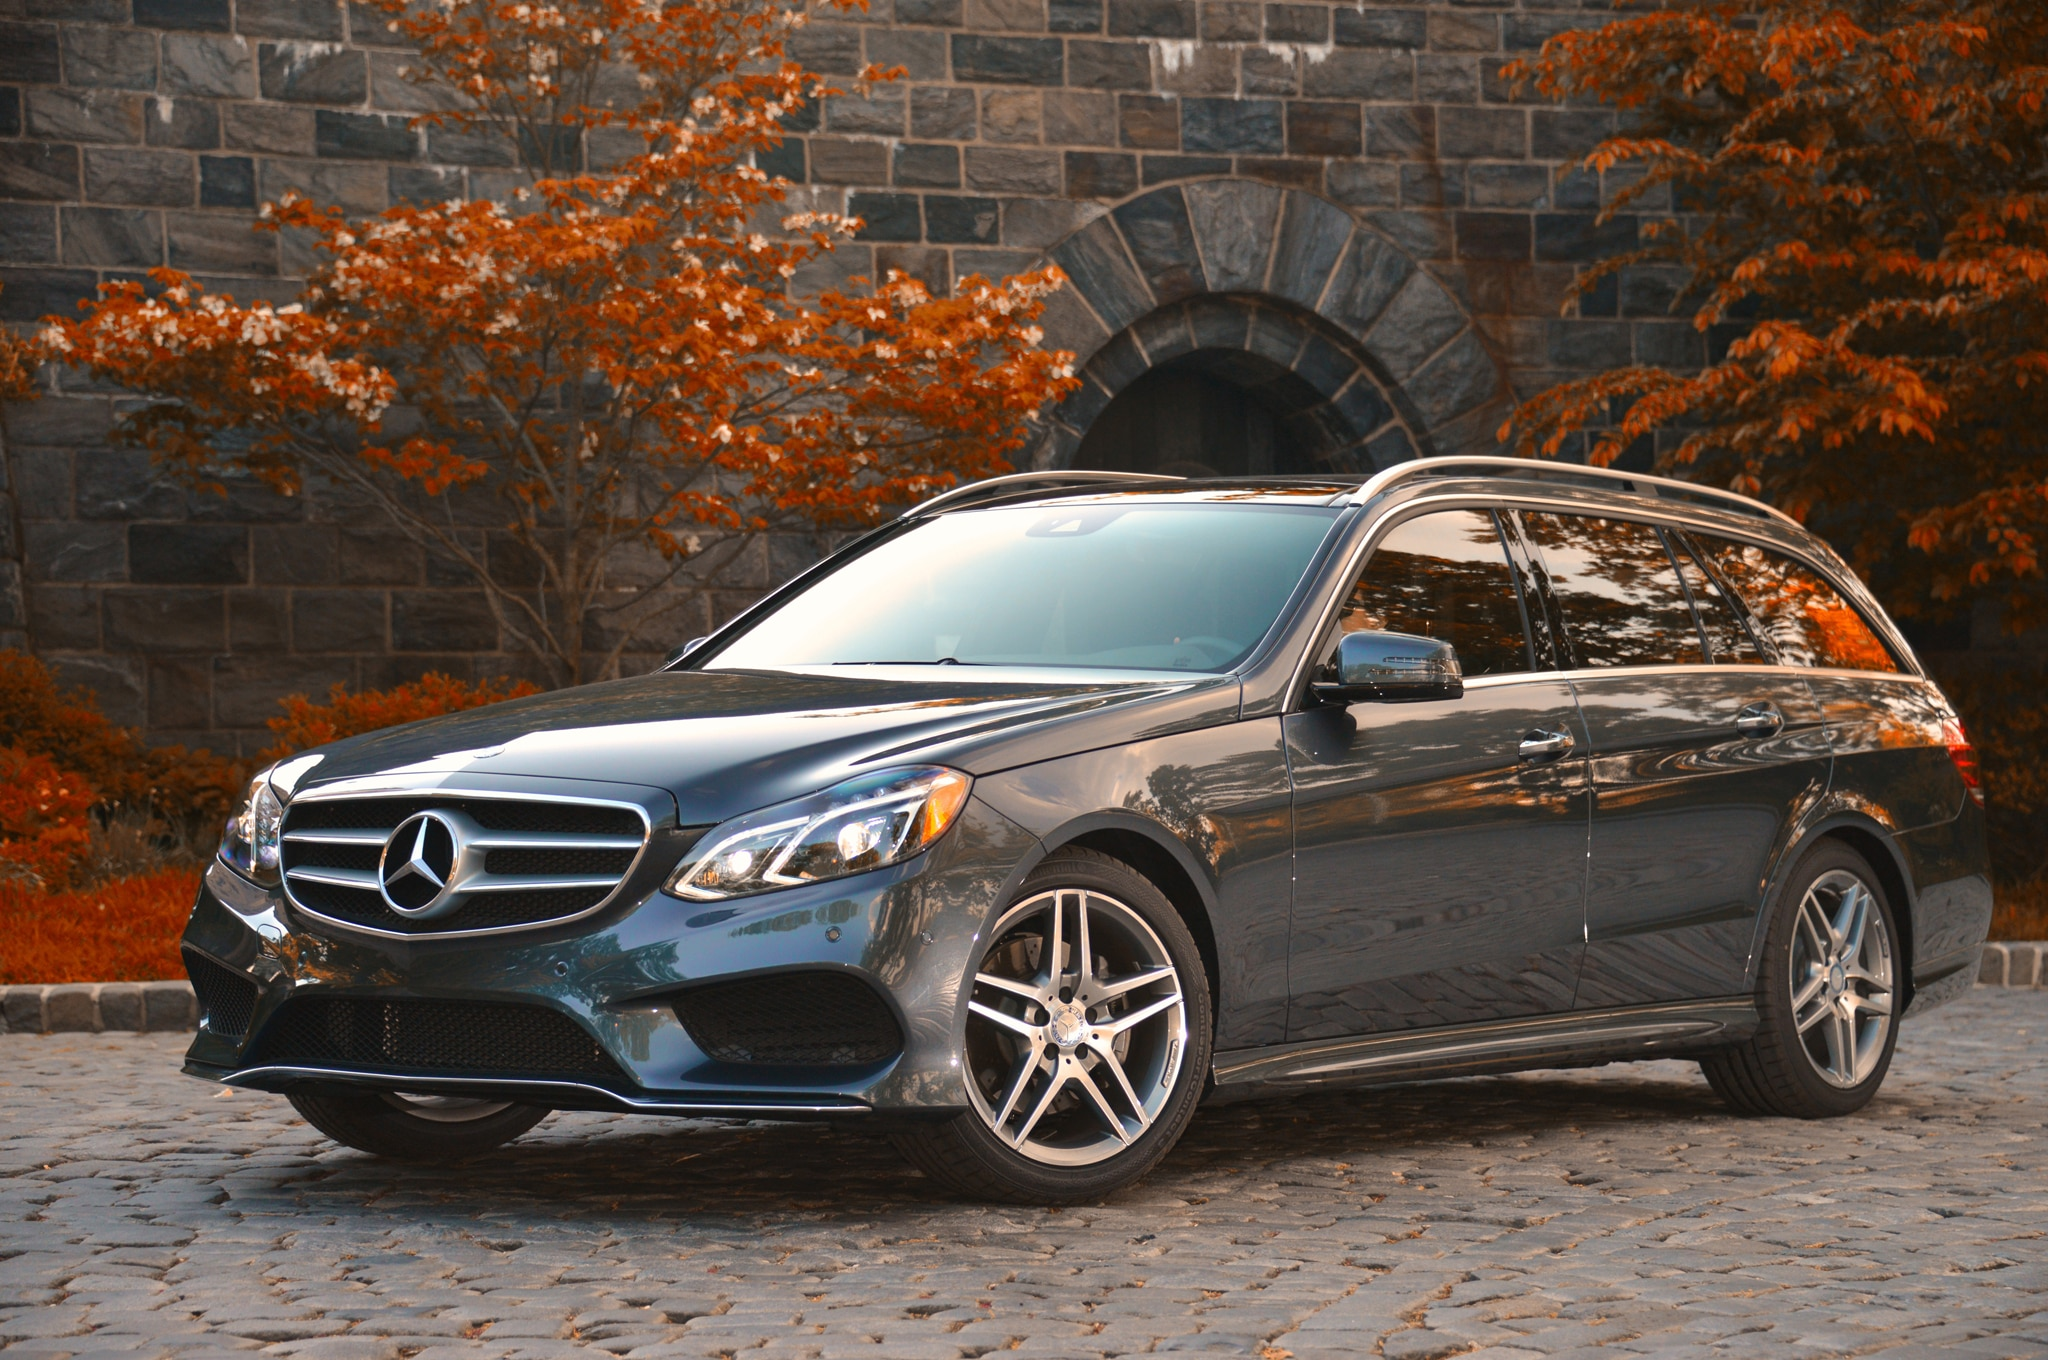 2014 Mercedes-Benz E550 4Matic: Around The Block